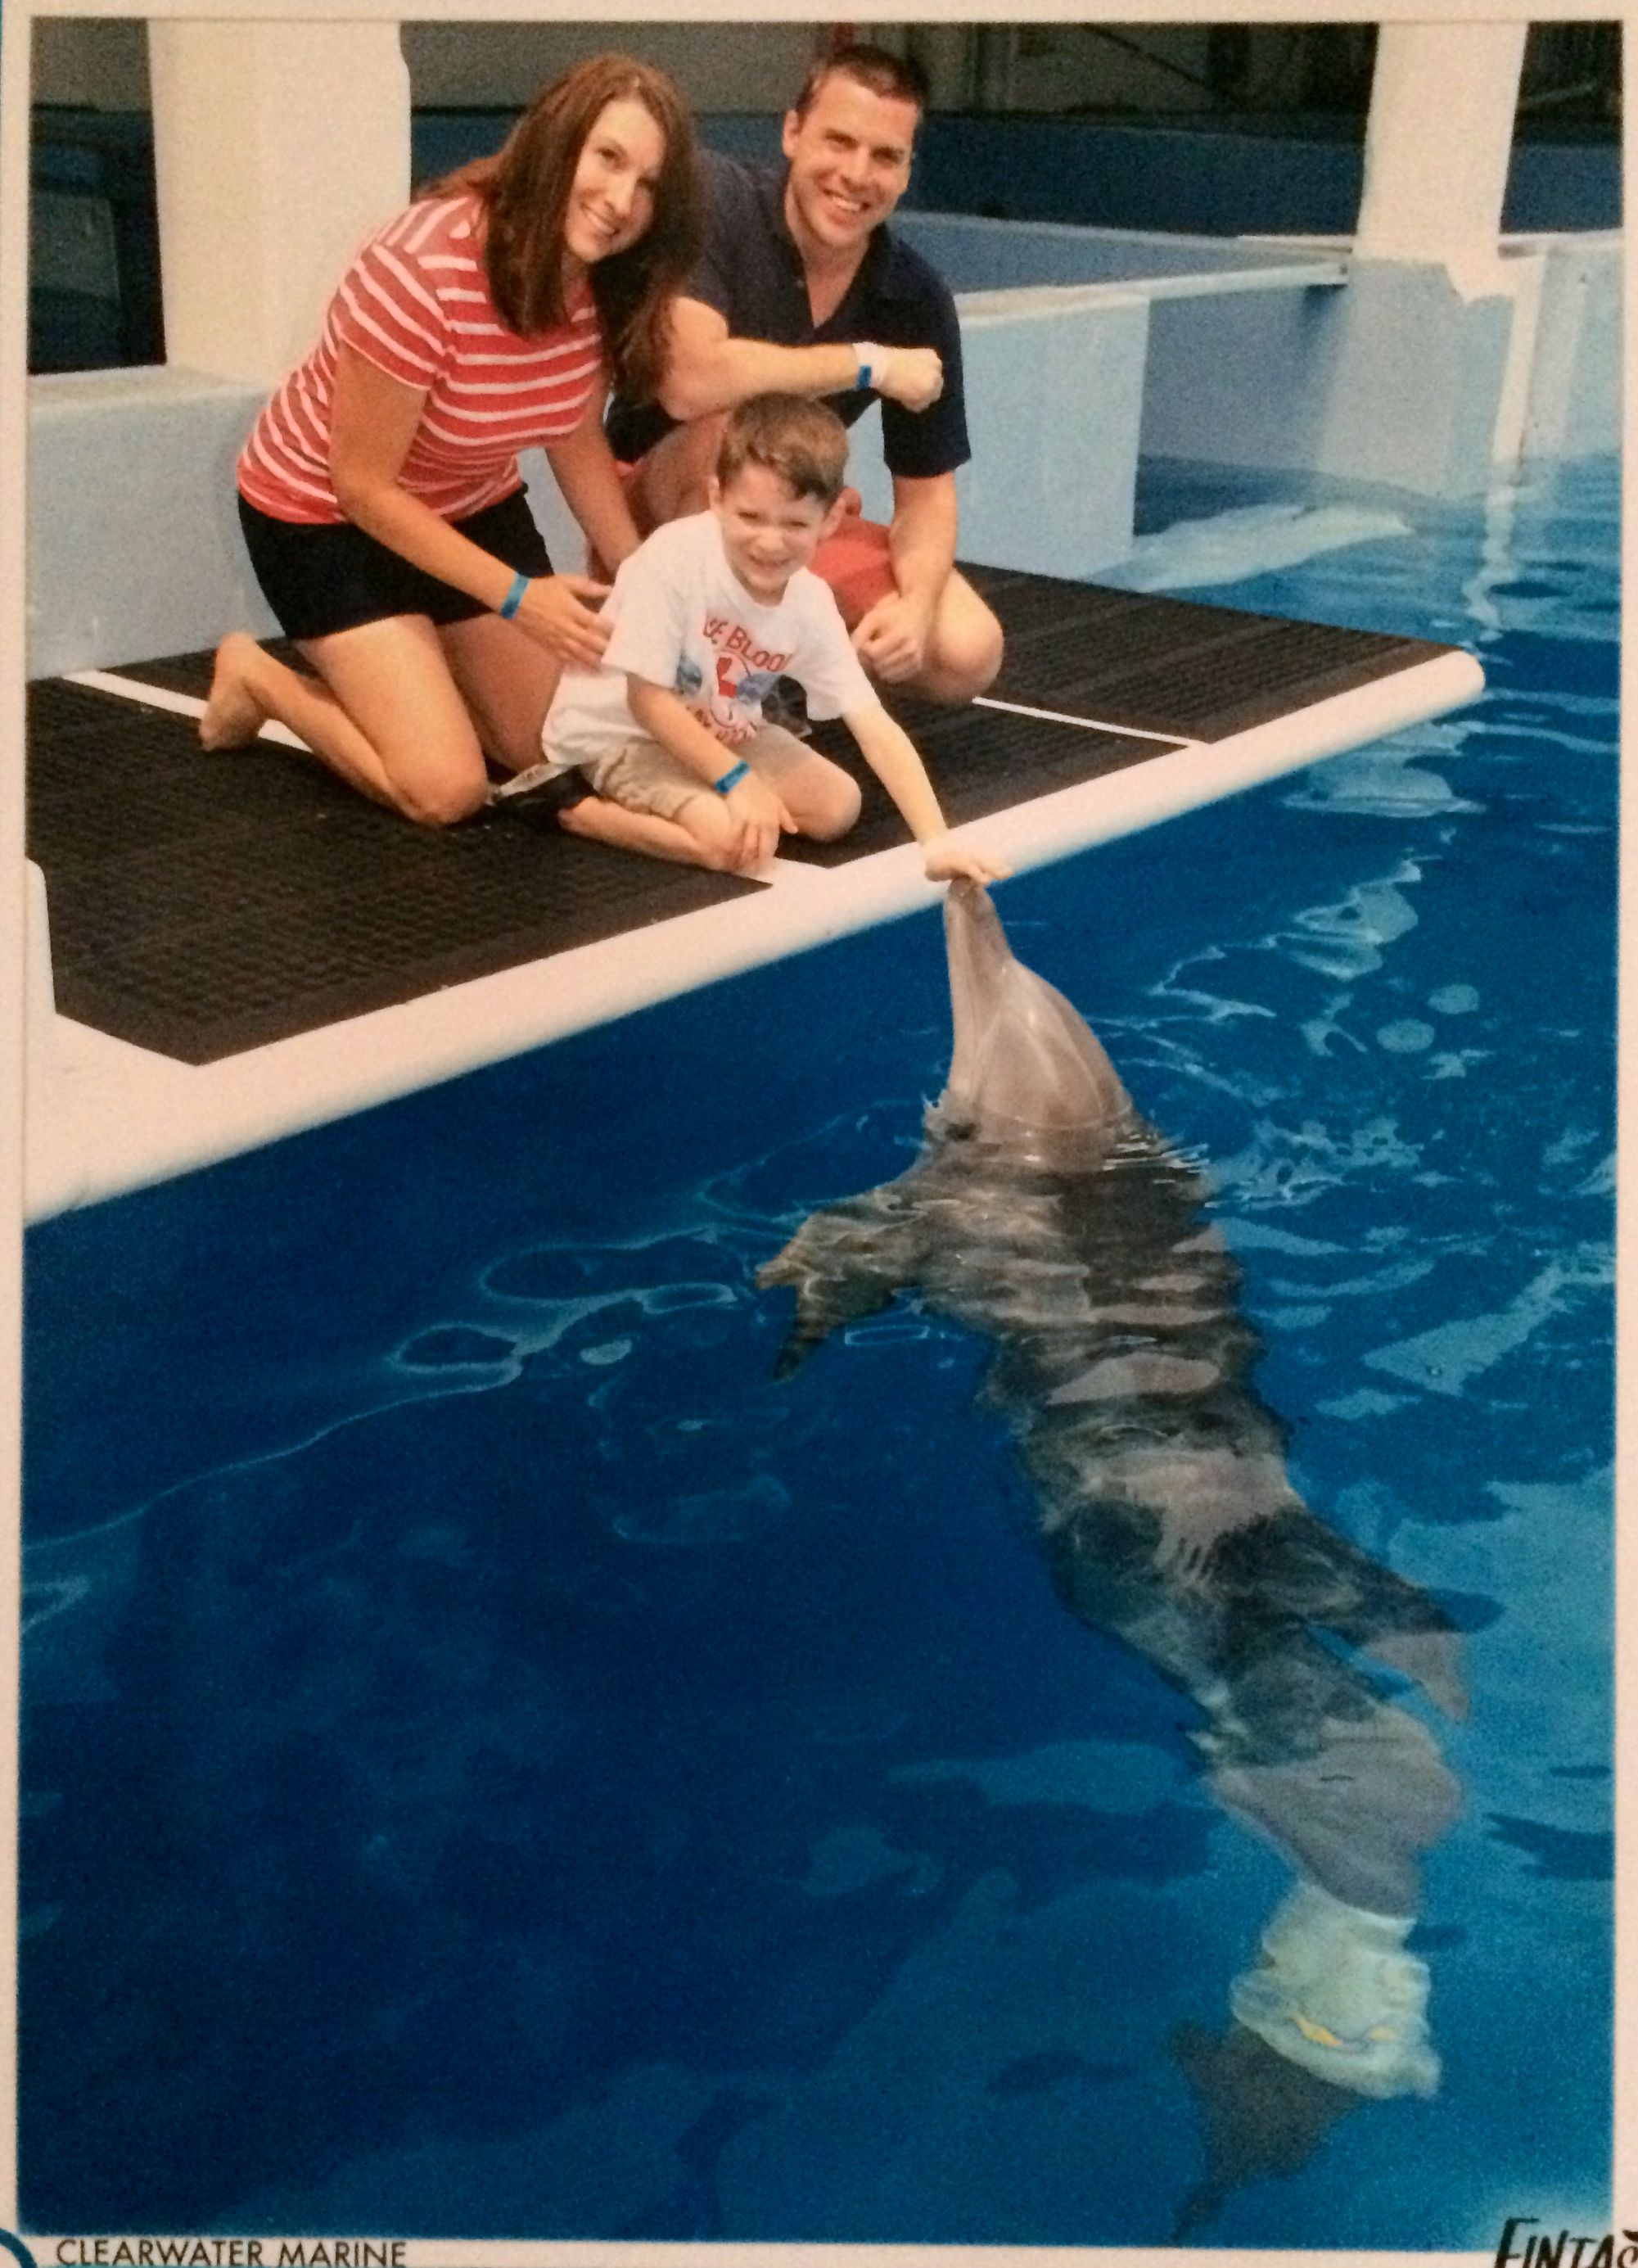 A Birthday Wish To Meet Winter The Dolphin